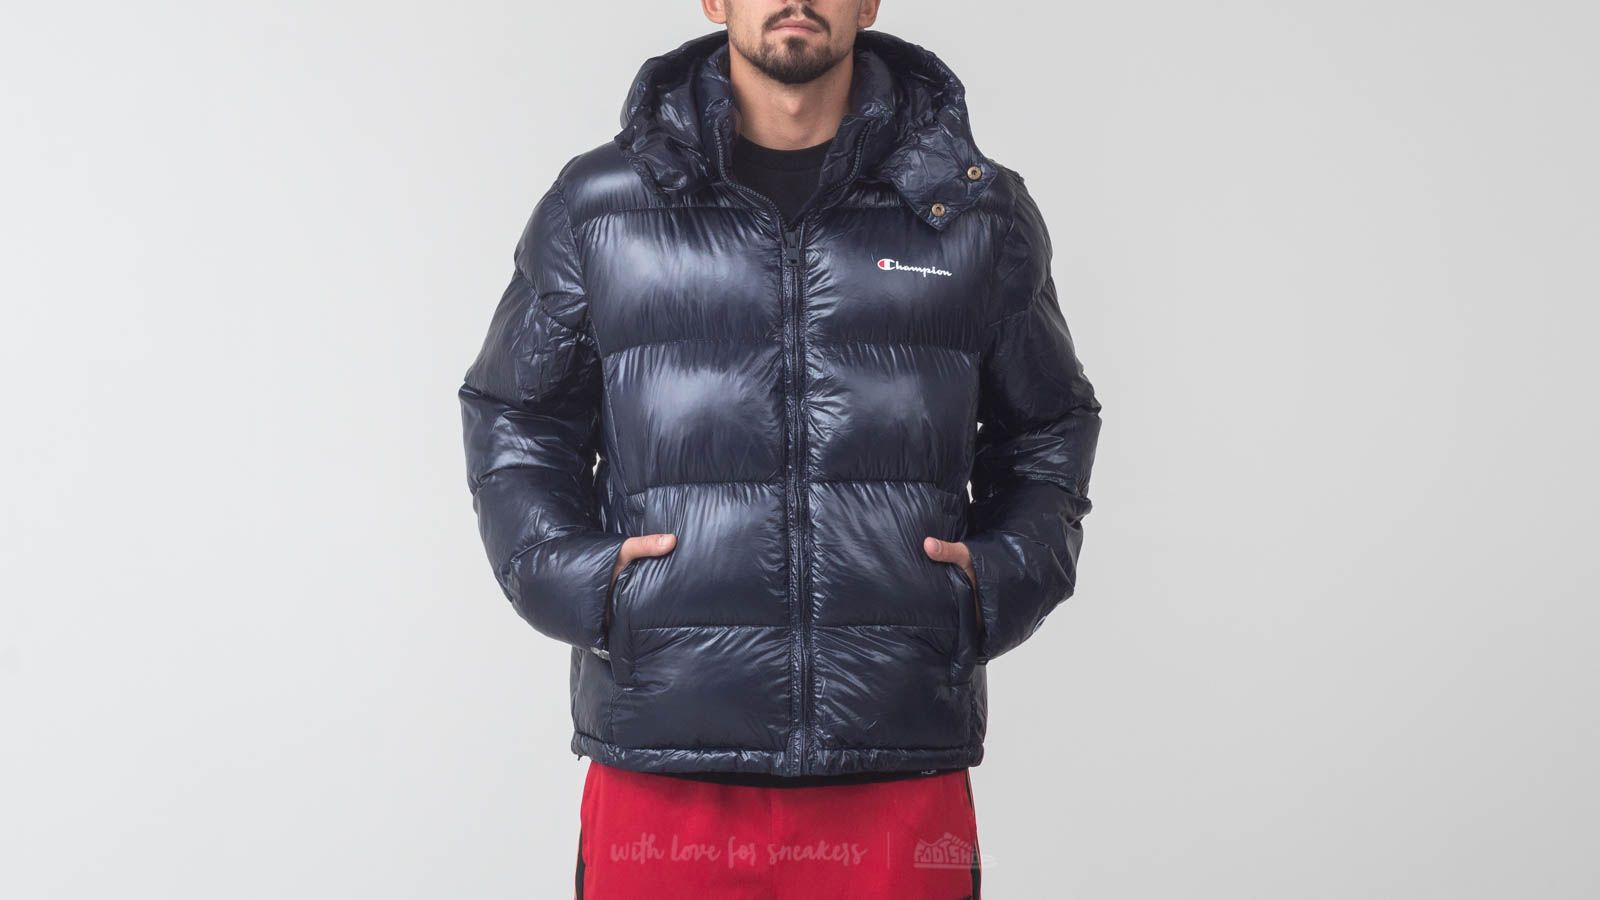 NavyFootshop Champion Hooded Champion Jacket Jacket Hooded NavyFootshop NavyFootshop Champion Jacket Hooded SUpGzMLqV